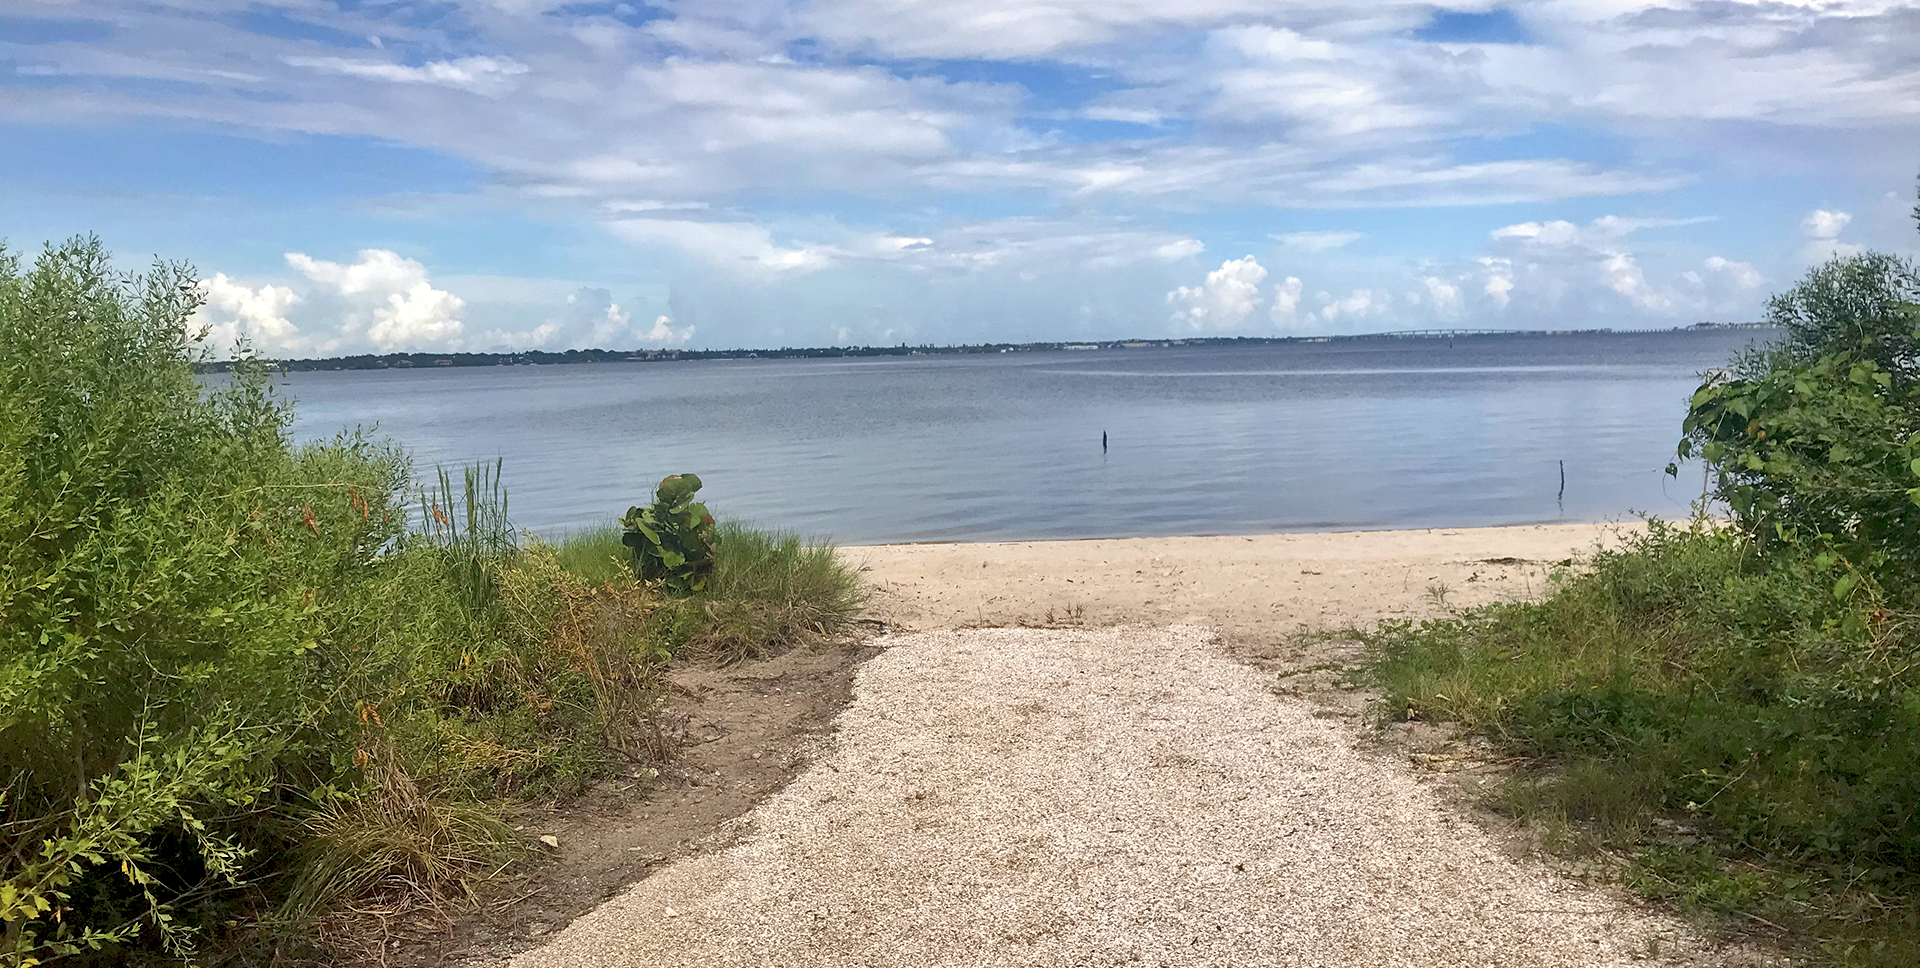 A sandy path leading to the Indian River Lagoon at River cove